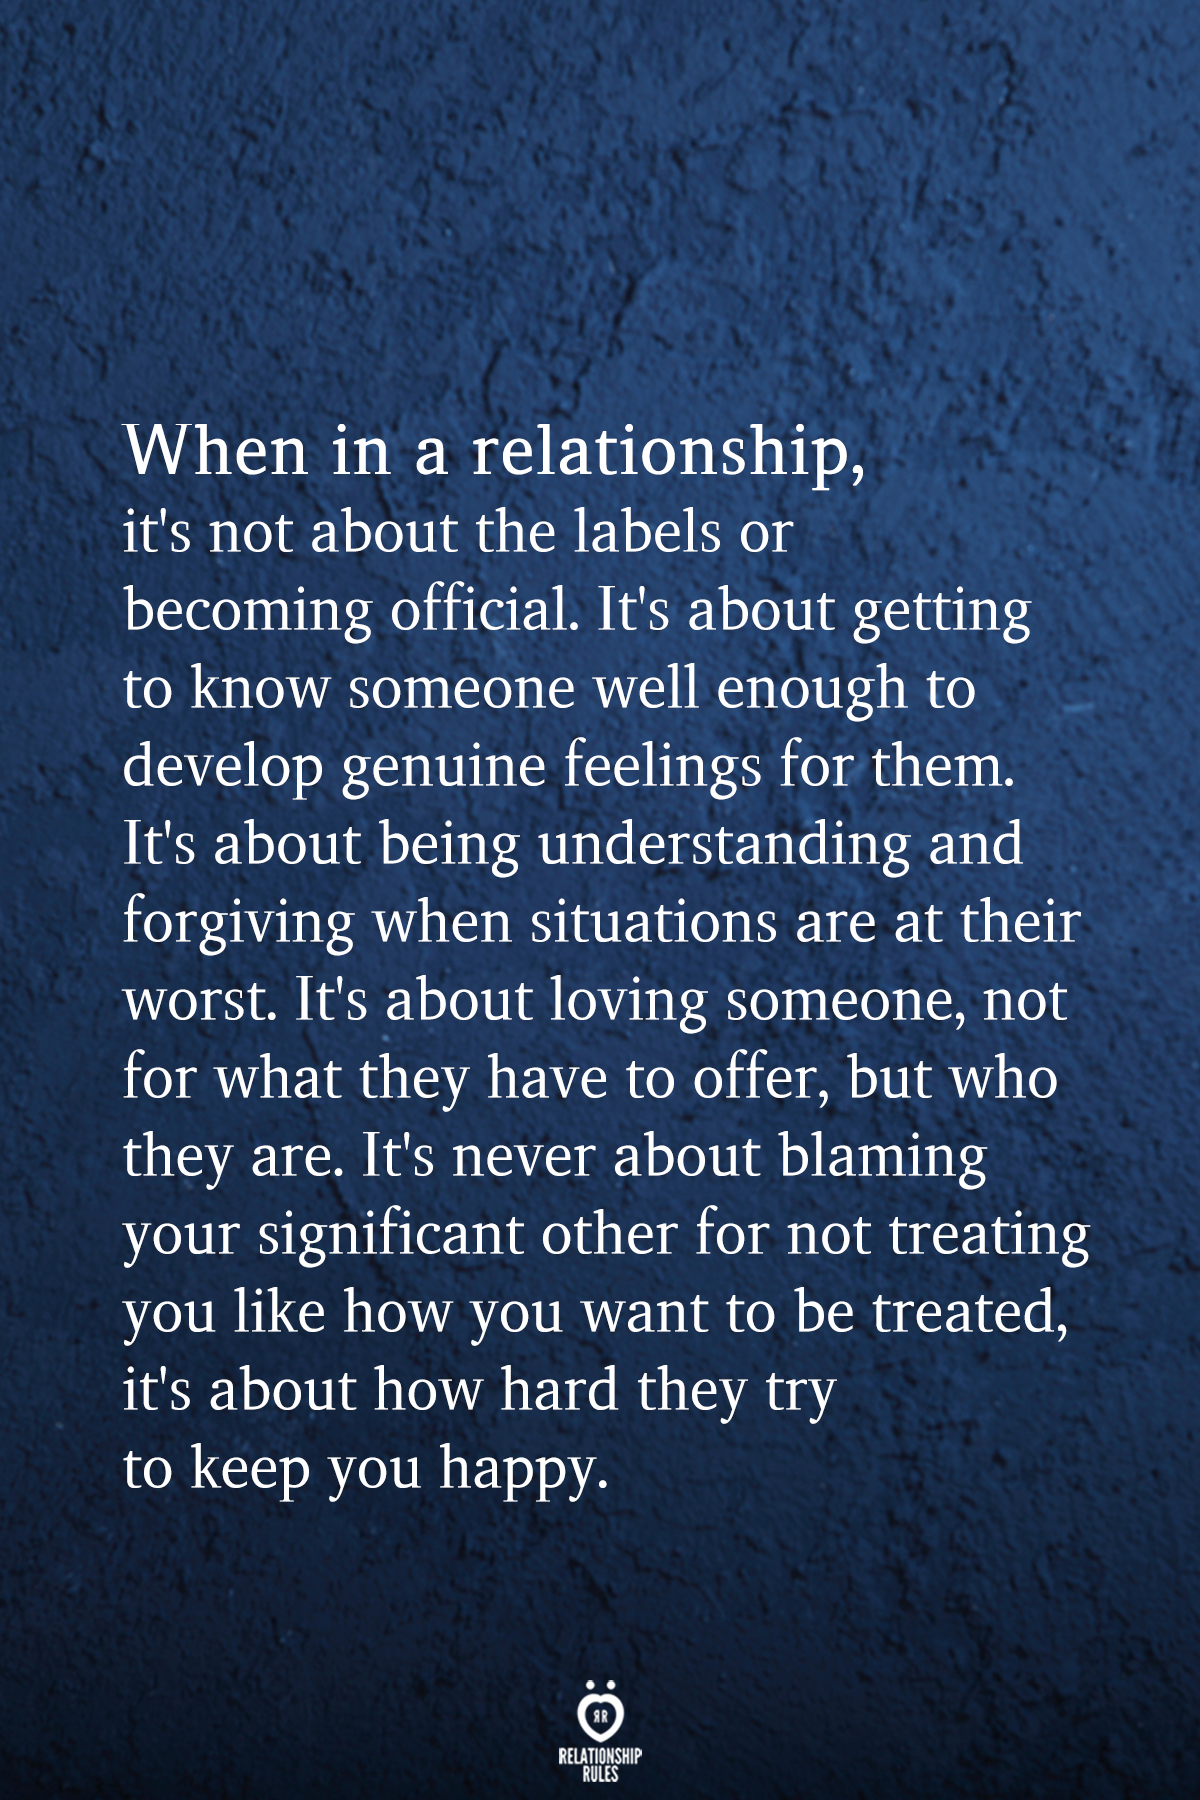 Quotes about being in a relationship